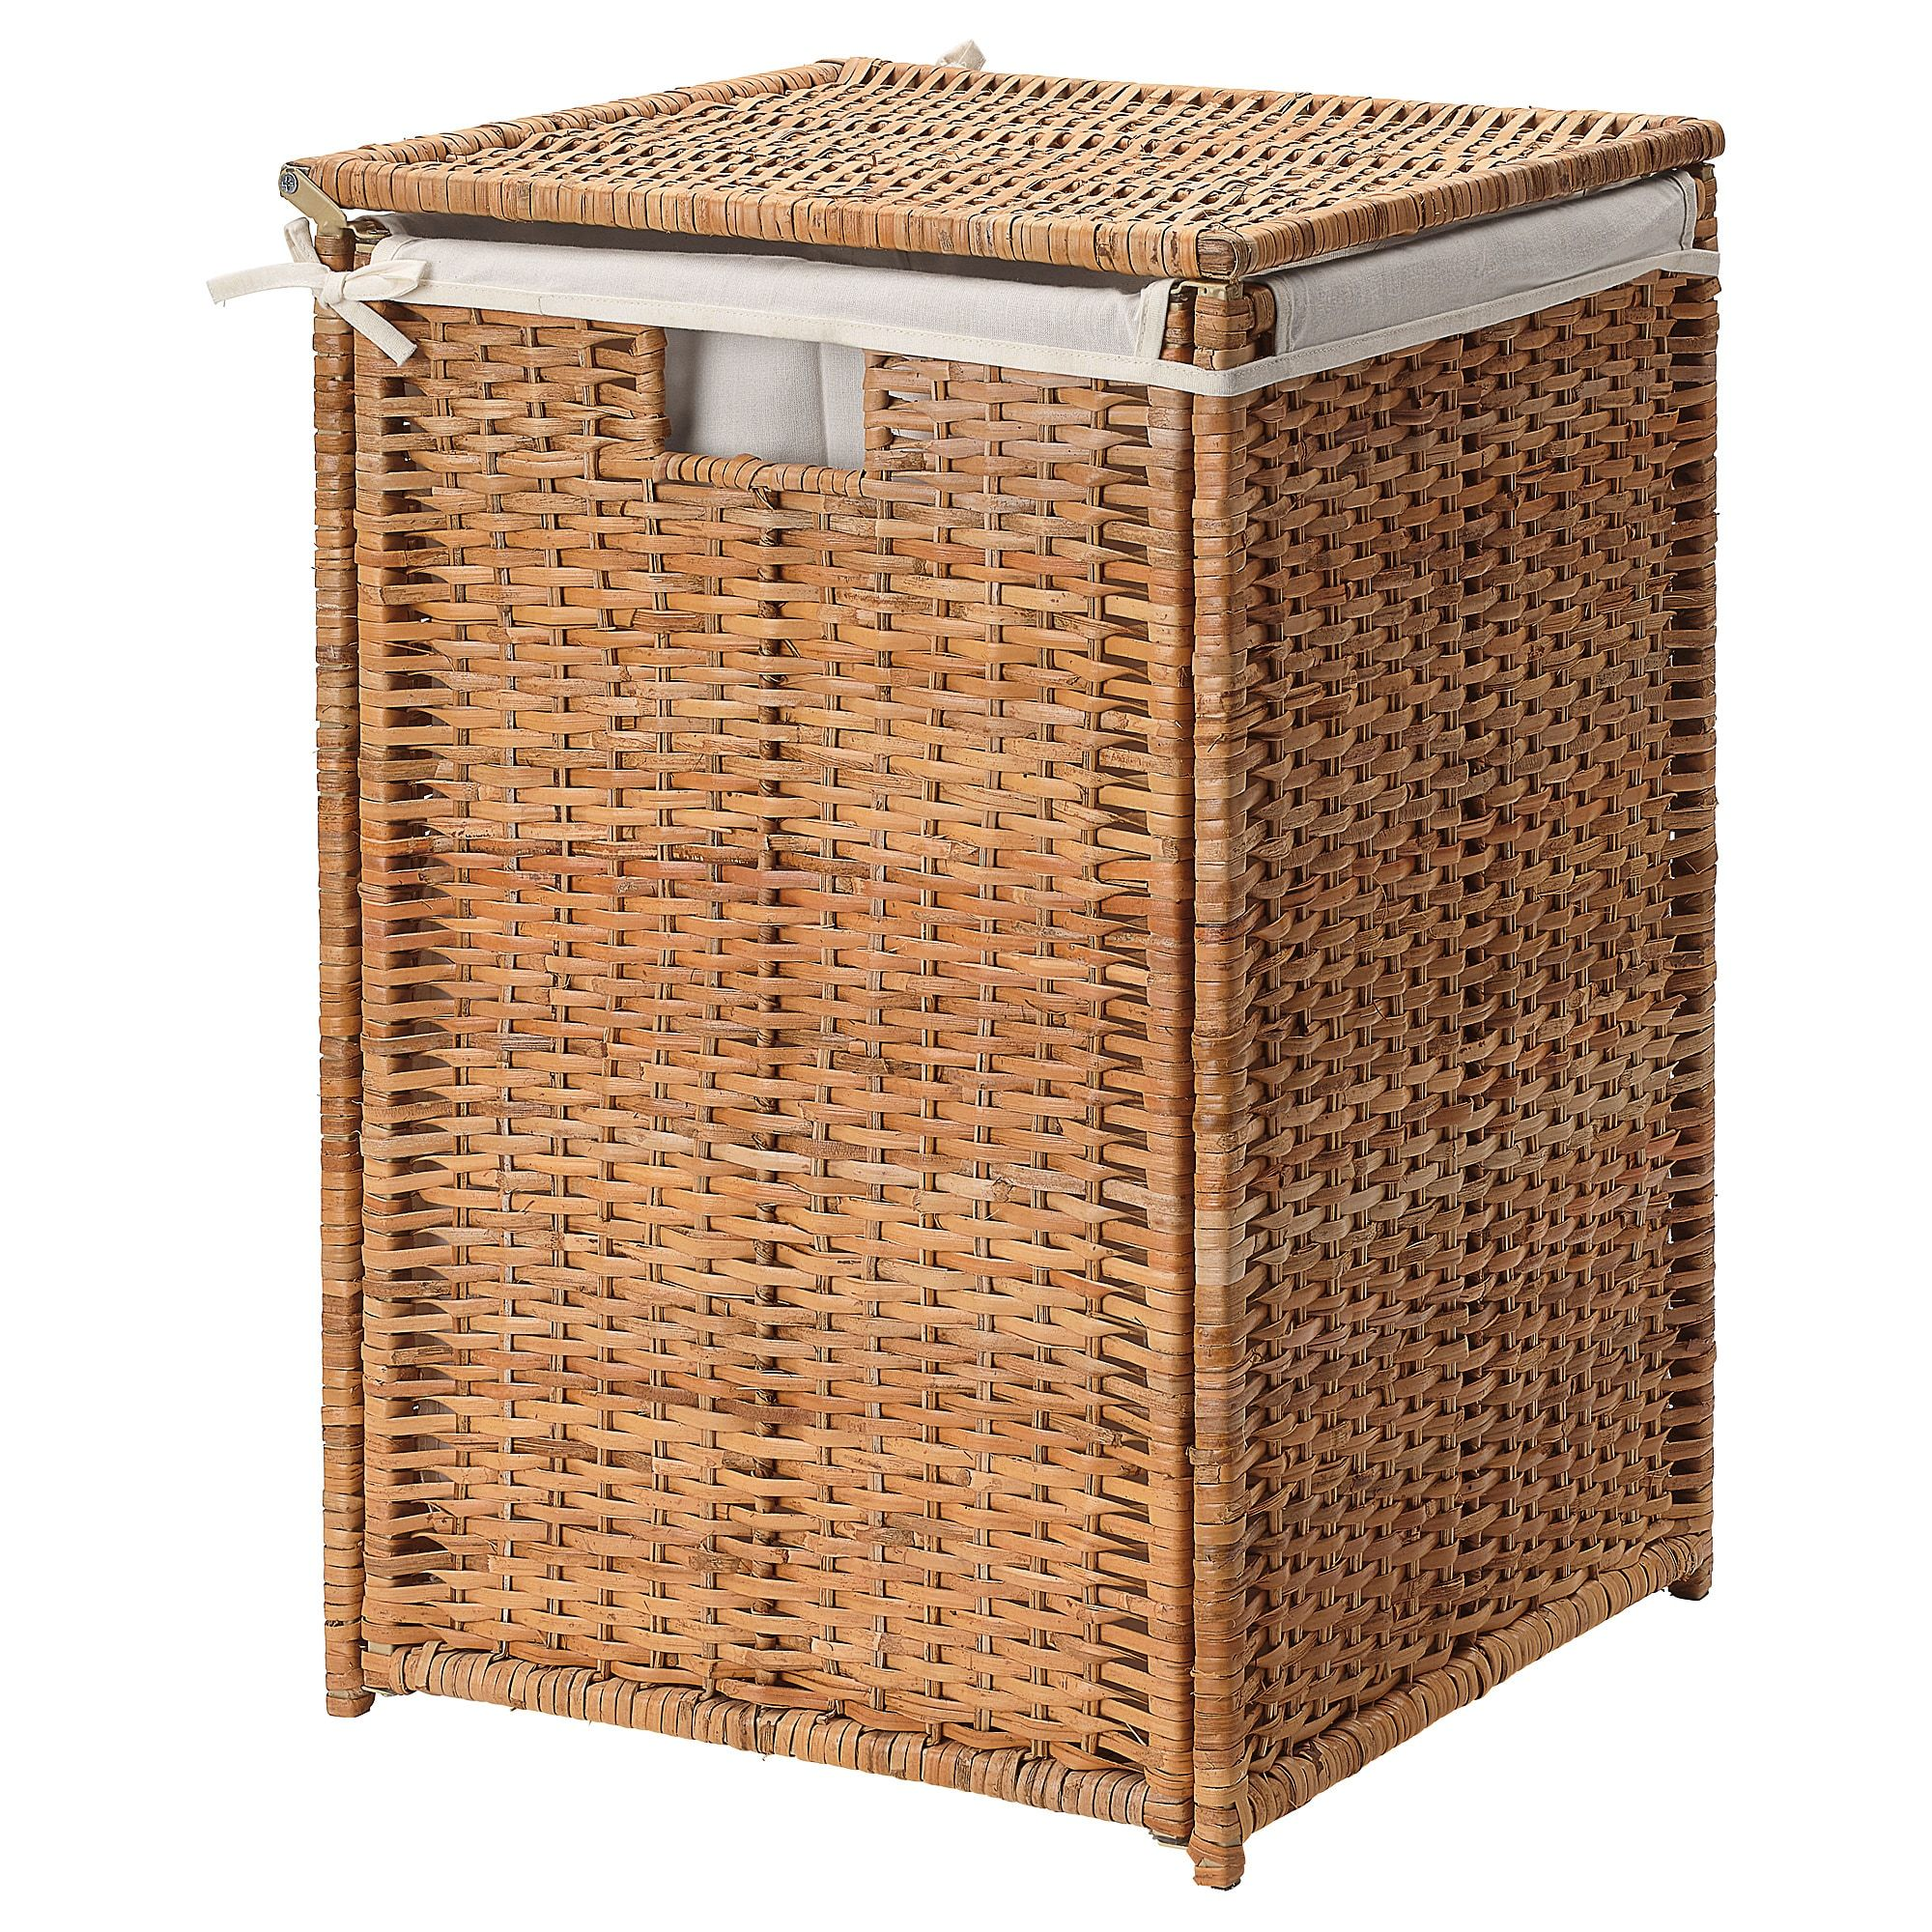 Branas Laundry Basket With Lining Rattan 21 Gallon Ikea Laundry Basket Ikea Laundry Ikea